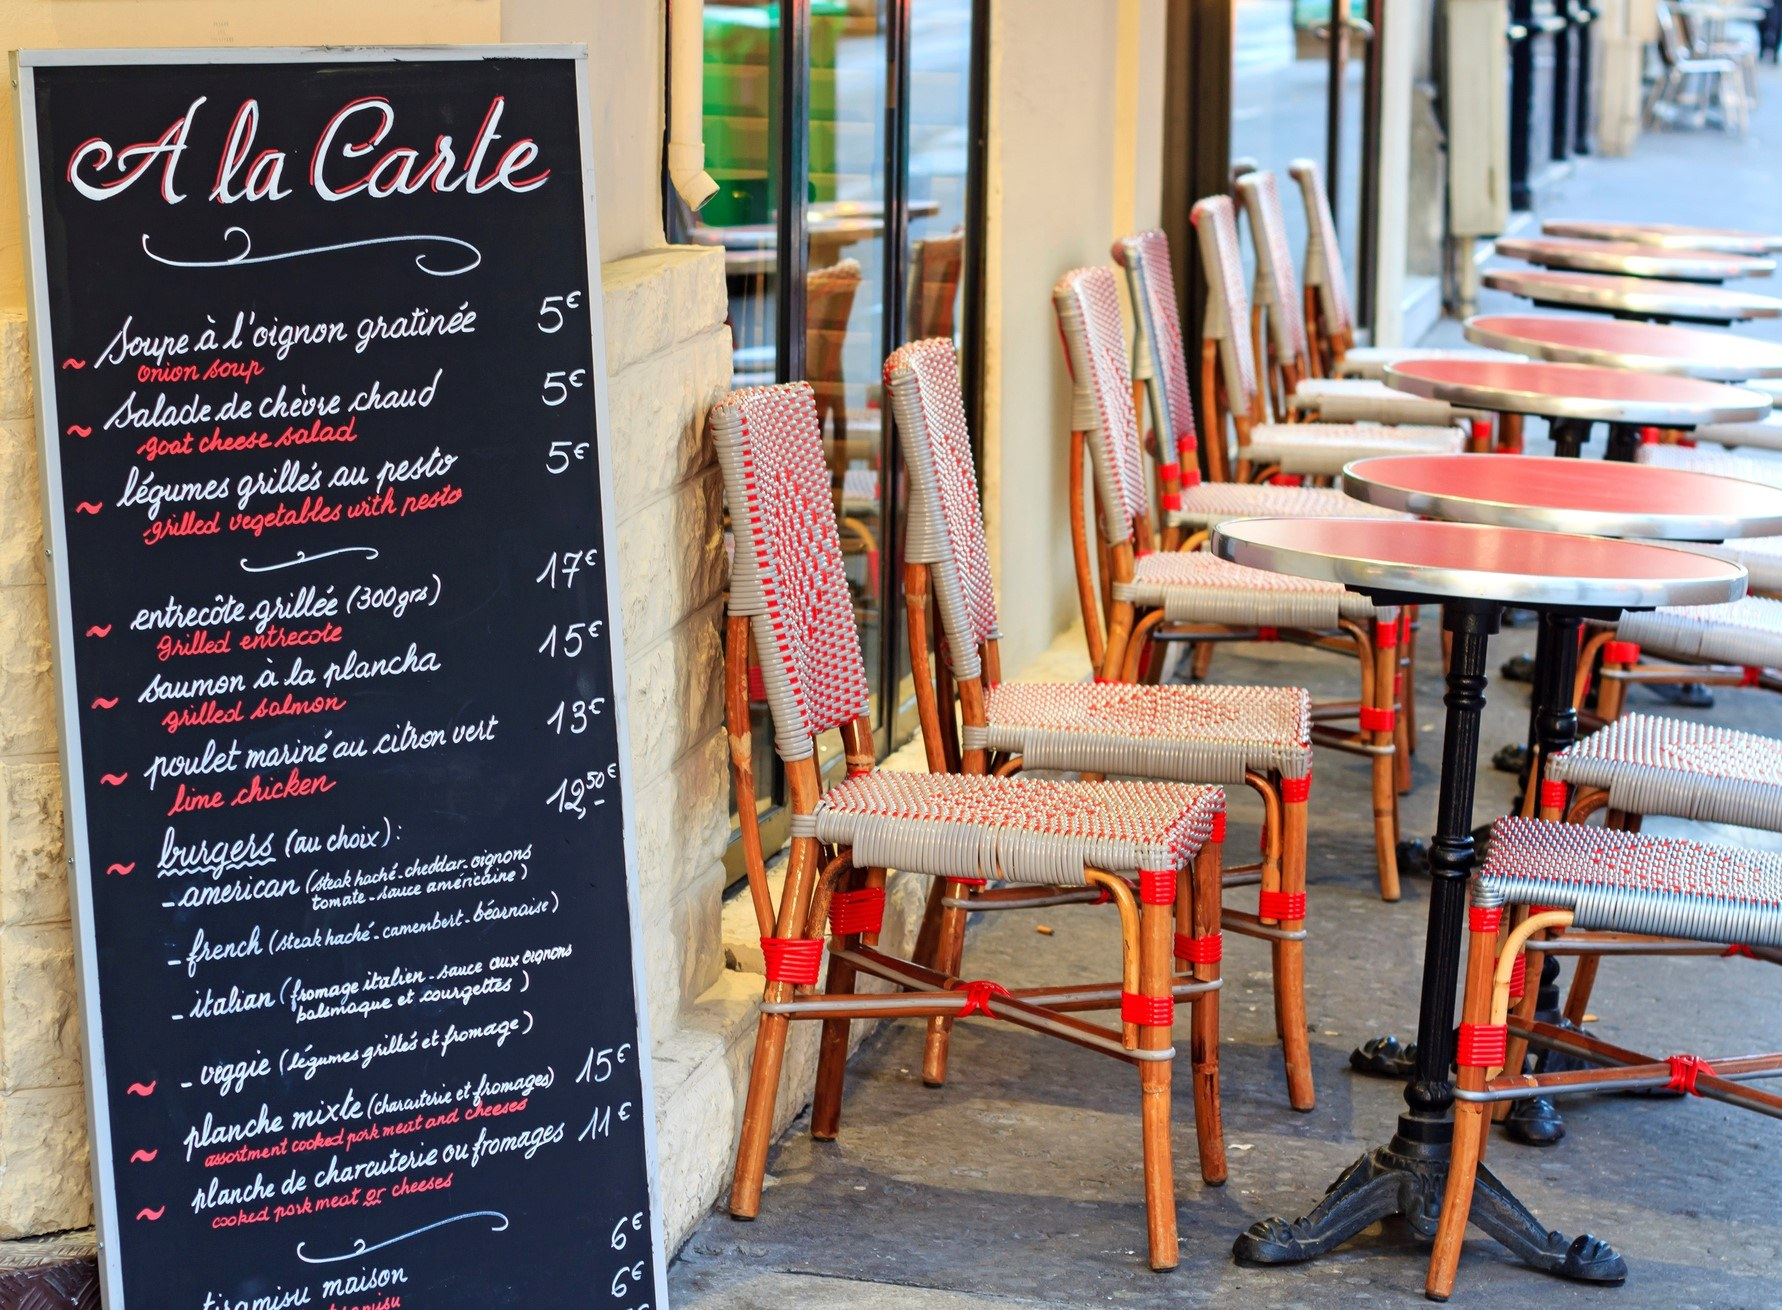 A cafe in Paris displaying menu items on a chalkboard